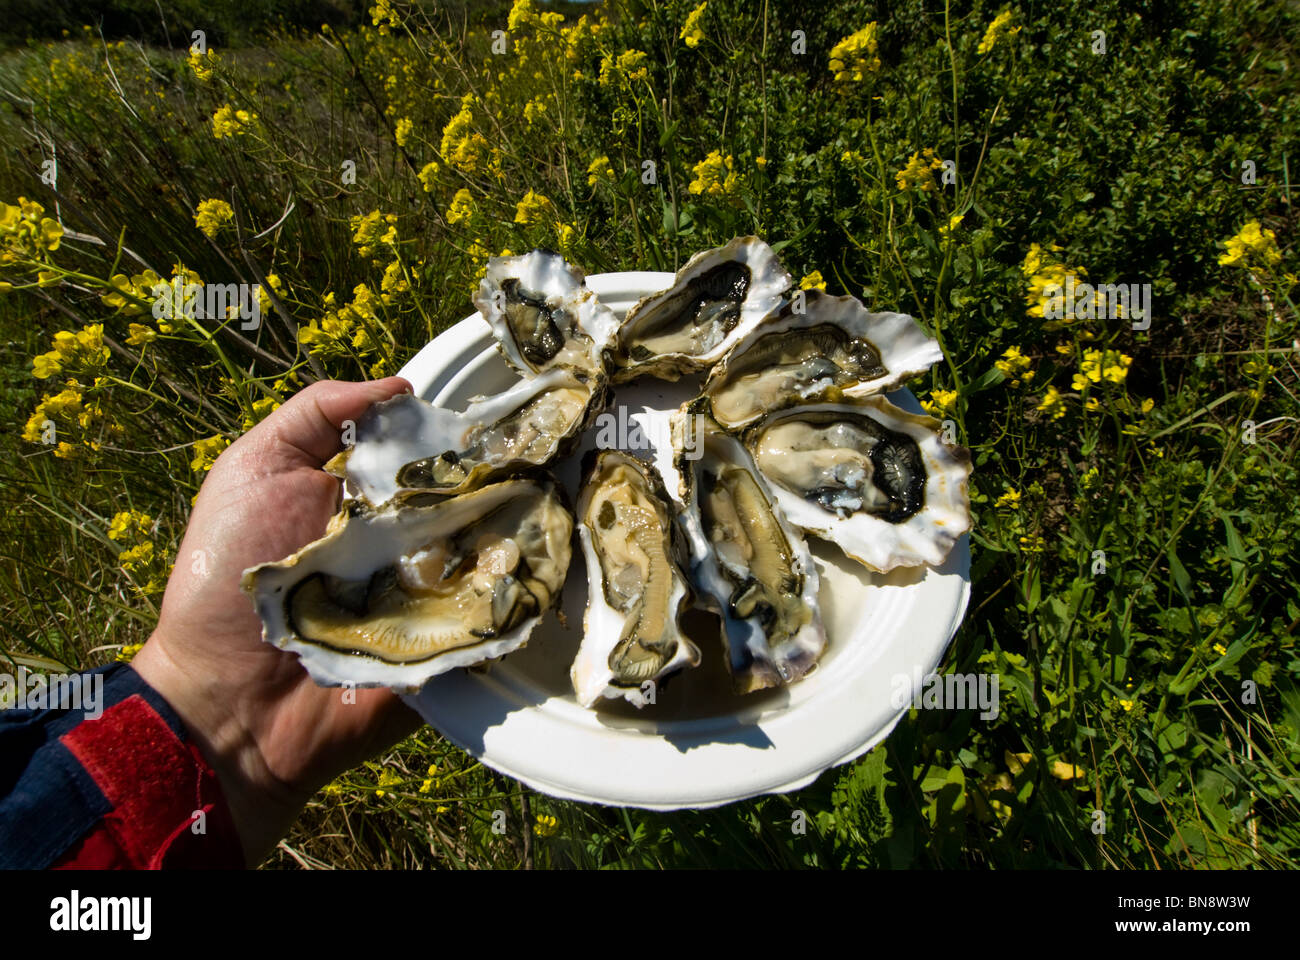 Plate of oysters at Drakes Bay Oyster Farm in Point Reyes, CA, raised in pristine waters of the bay. - Stock Image